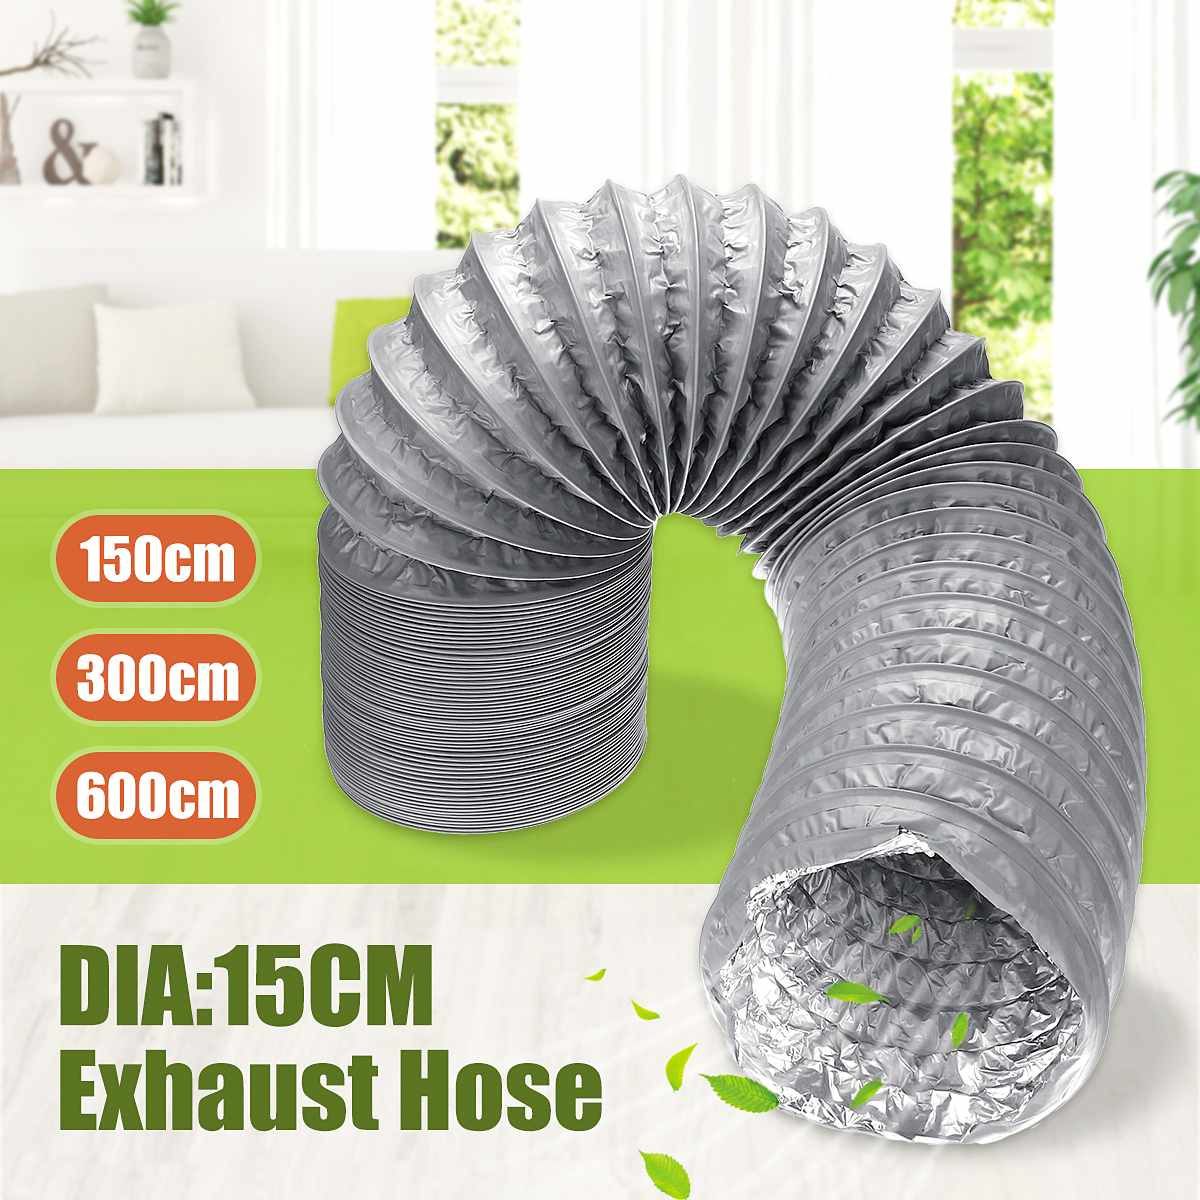 Exhaust Tube 150mm 130mcm 1.5M/3M/6M Flexible PVC Alufoil Exhaust Vent Hose Air Ventilation Exhaust Fan Pipe Kitchen Accessories